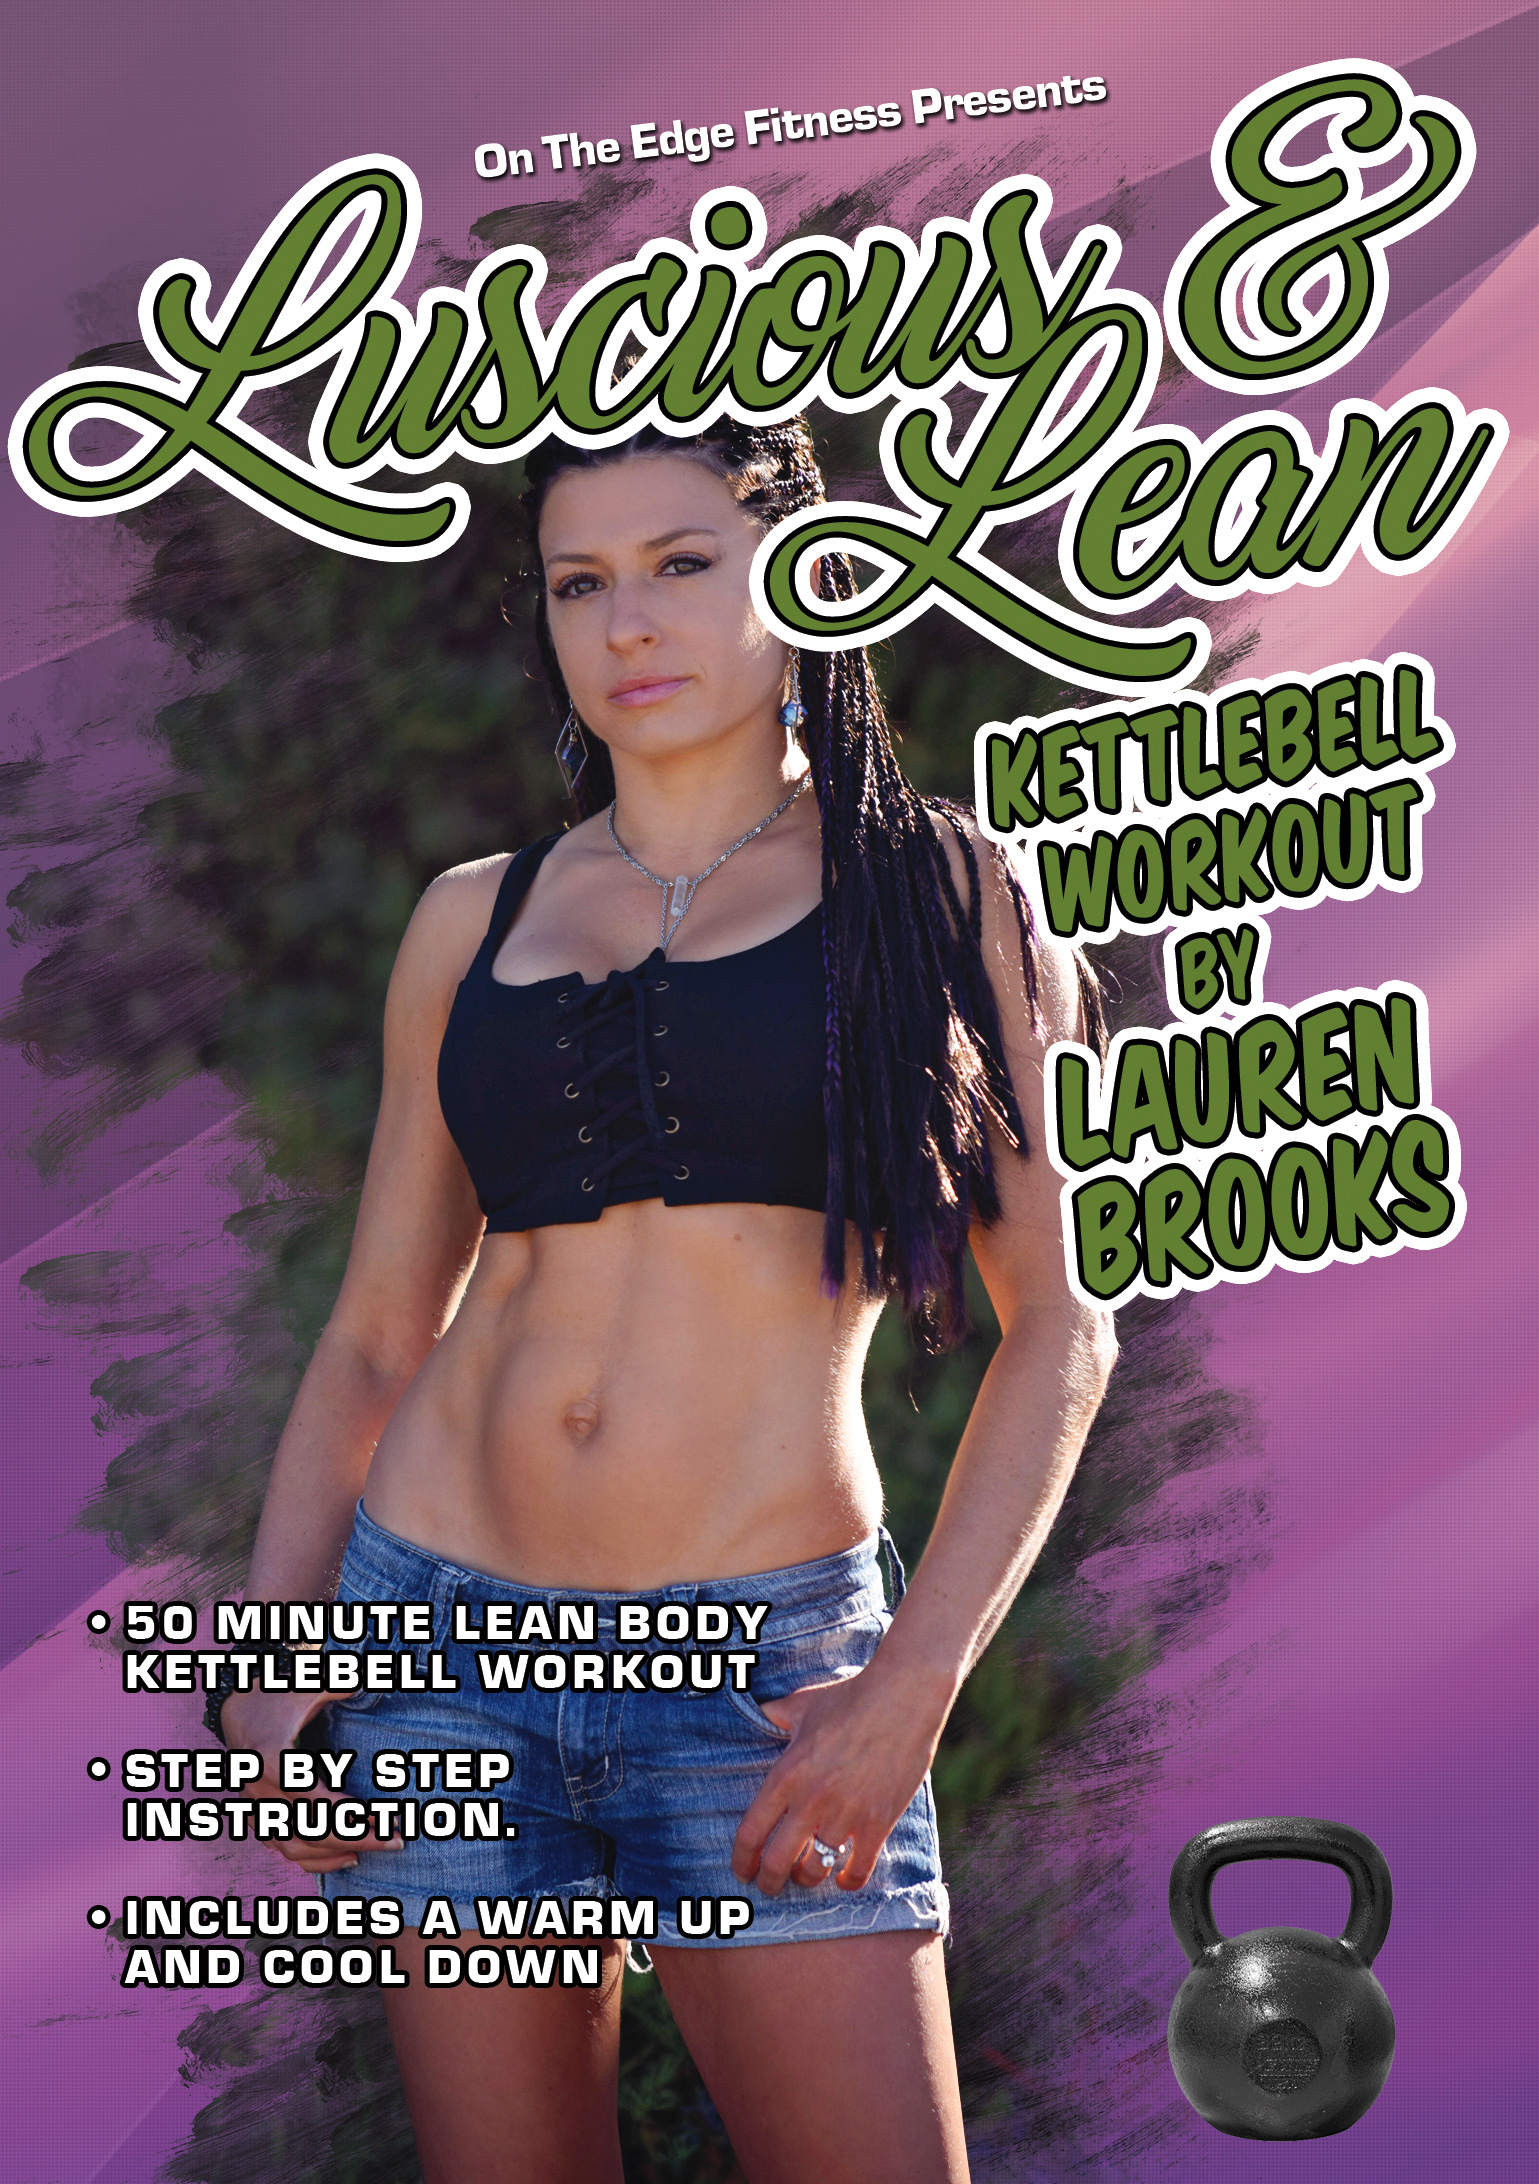 NEW** Luscious & Lean Kettlebell Workout